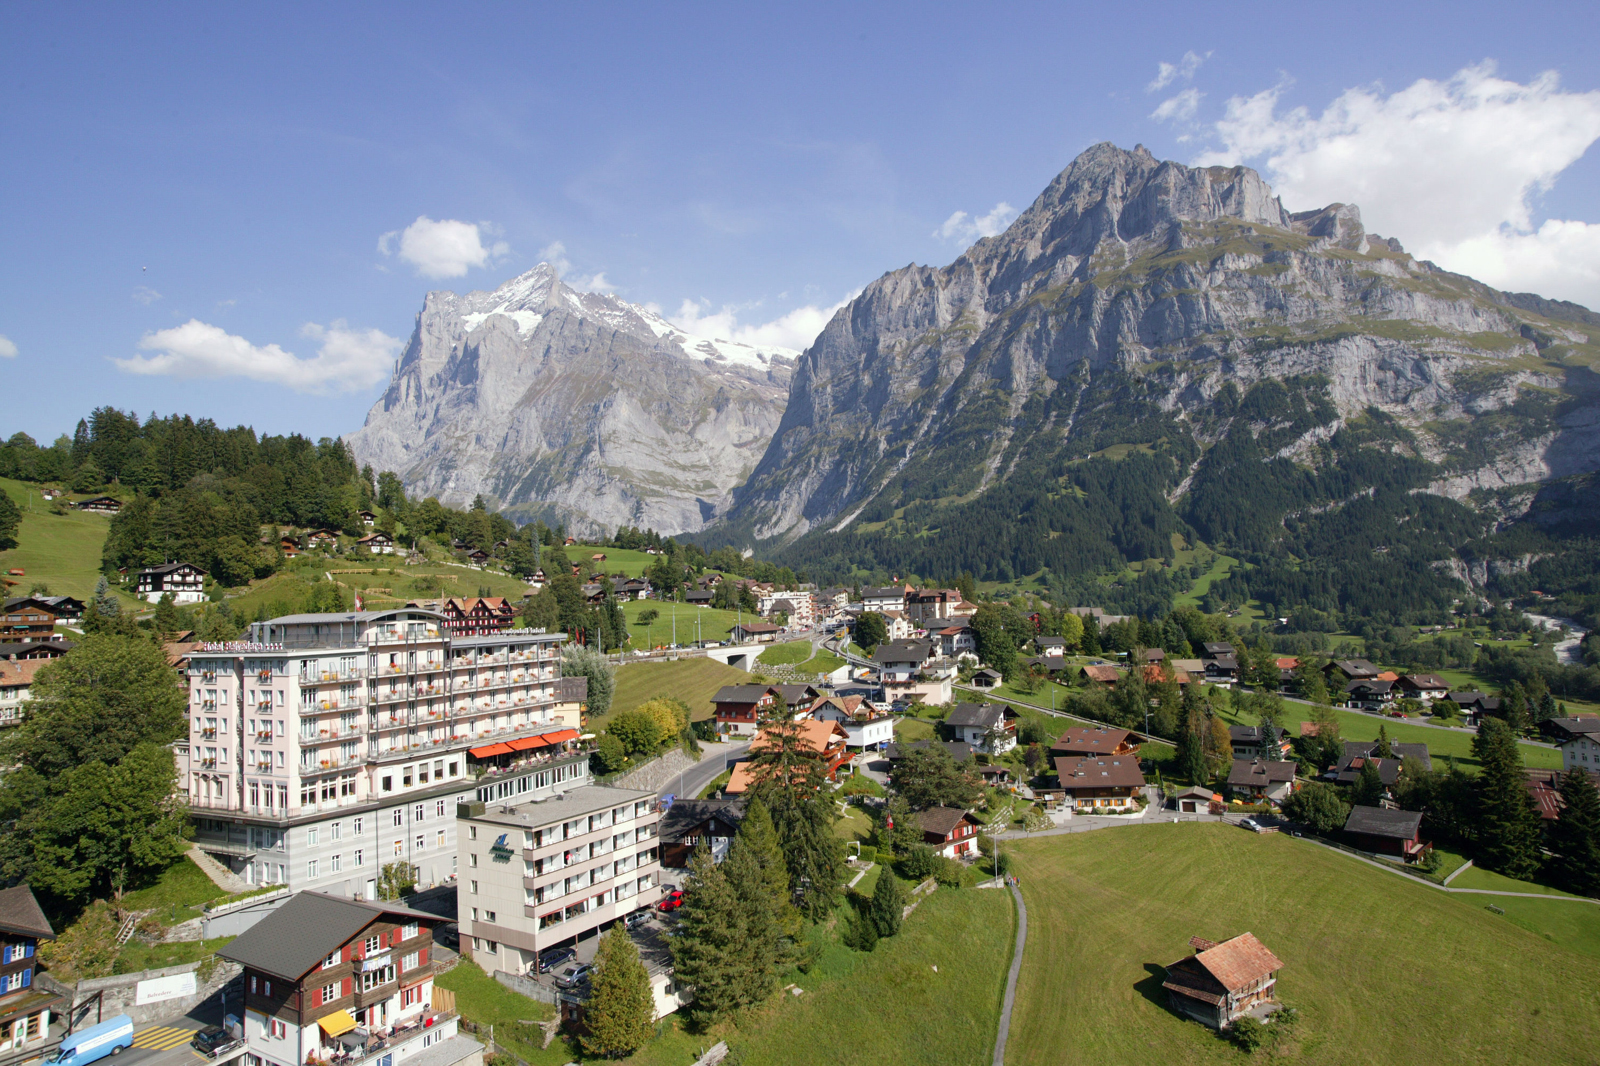 Hotel Belvedere, Grindelwald (CH / BE)